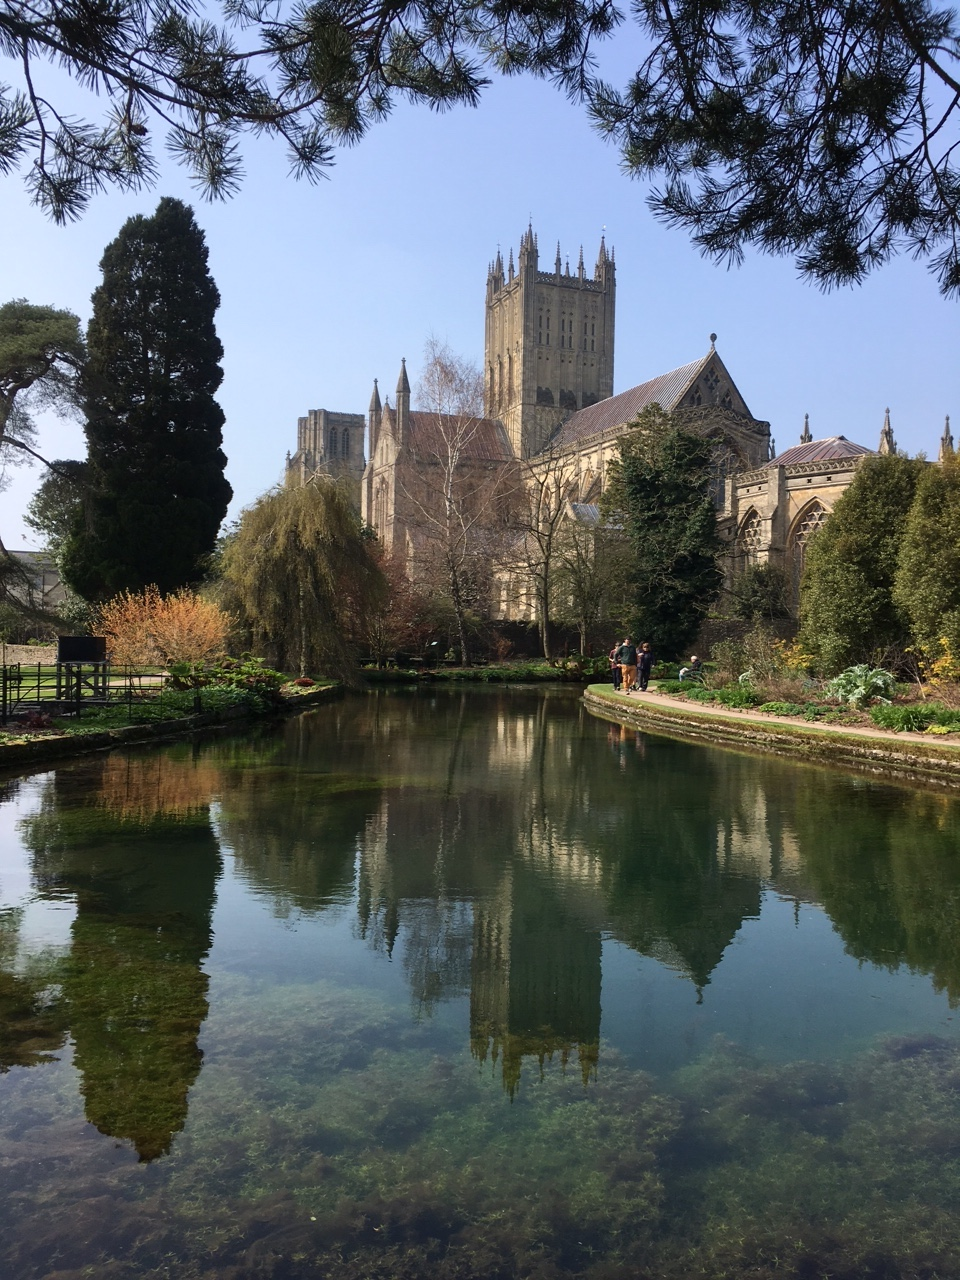 Rear view of Wells Cathedral with reflection in one of the wells that Wells takes it's name from.